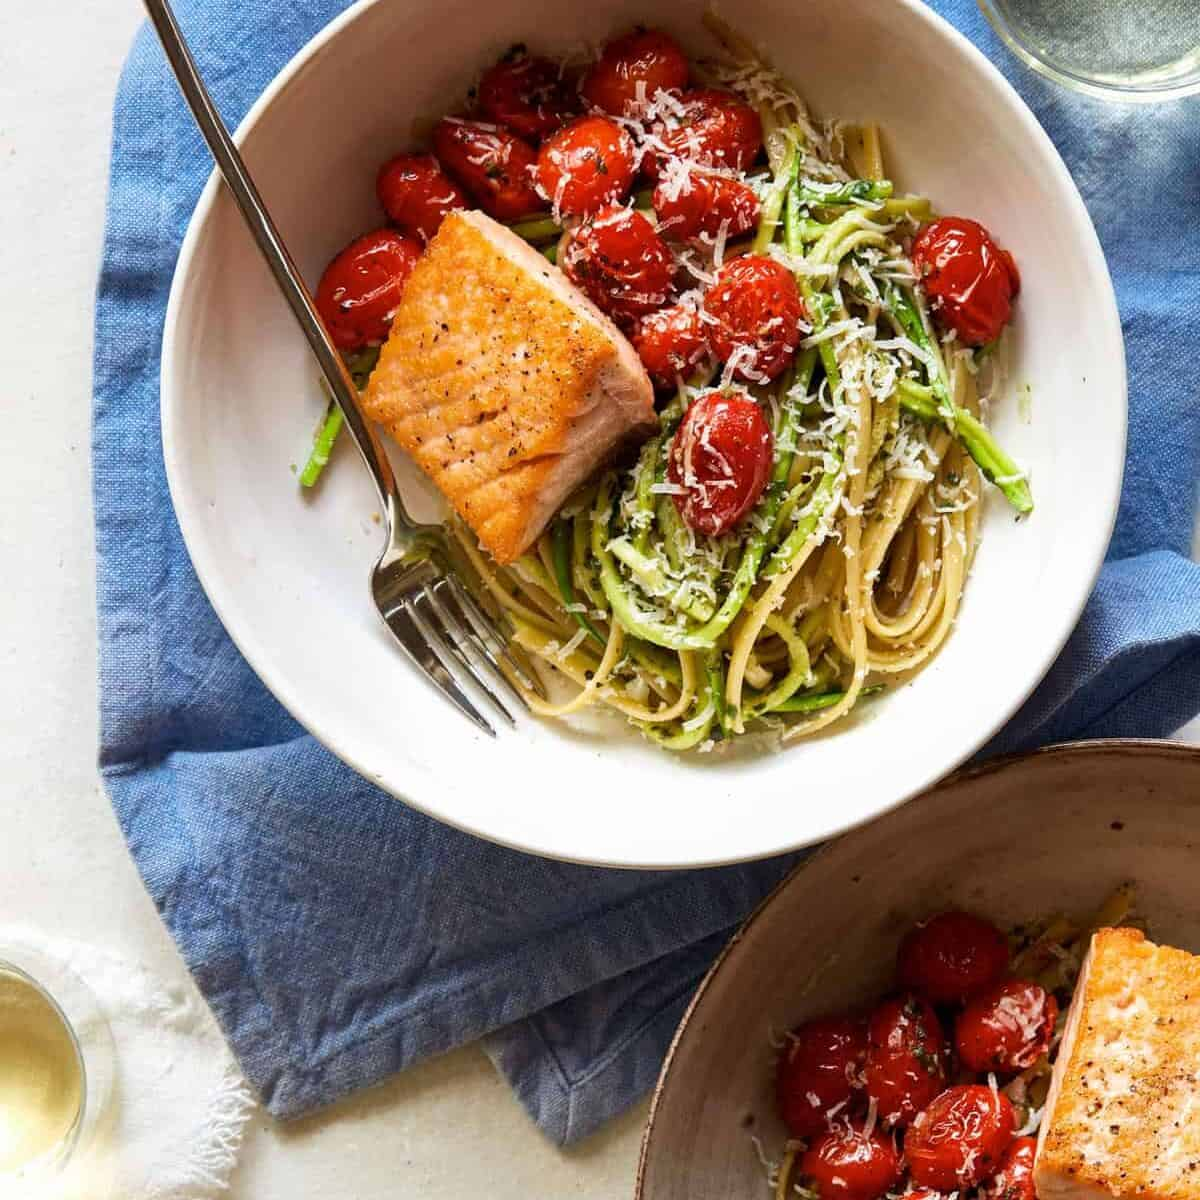 Seared salmon over 50/50 spaghetti with arugula and walnut pesto with a fork. Heathy dinner ideas.